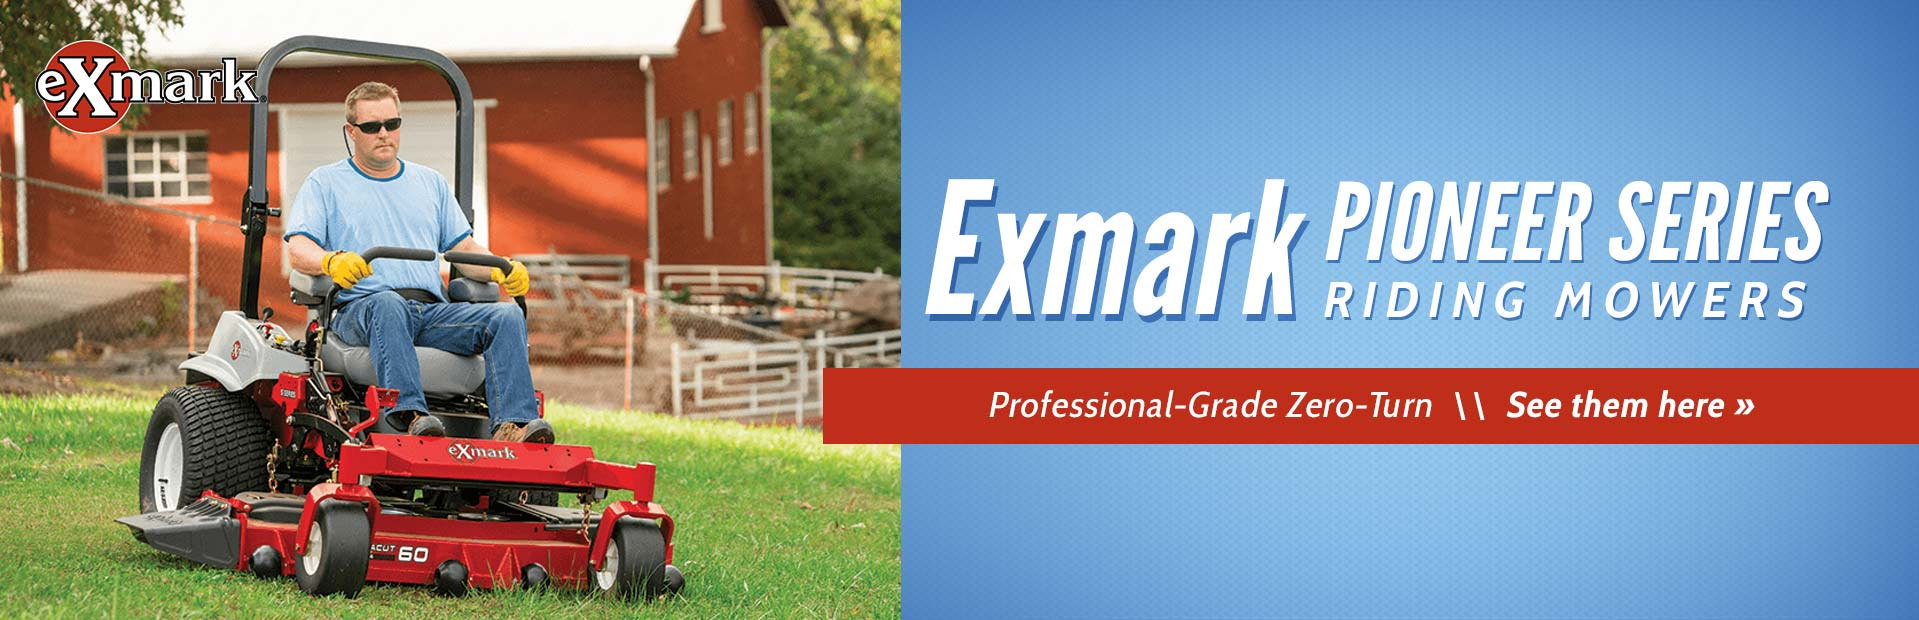 Exmark Pioneer Series Riding Mowers: Click here to view the models.